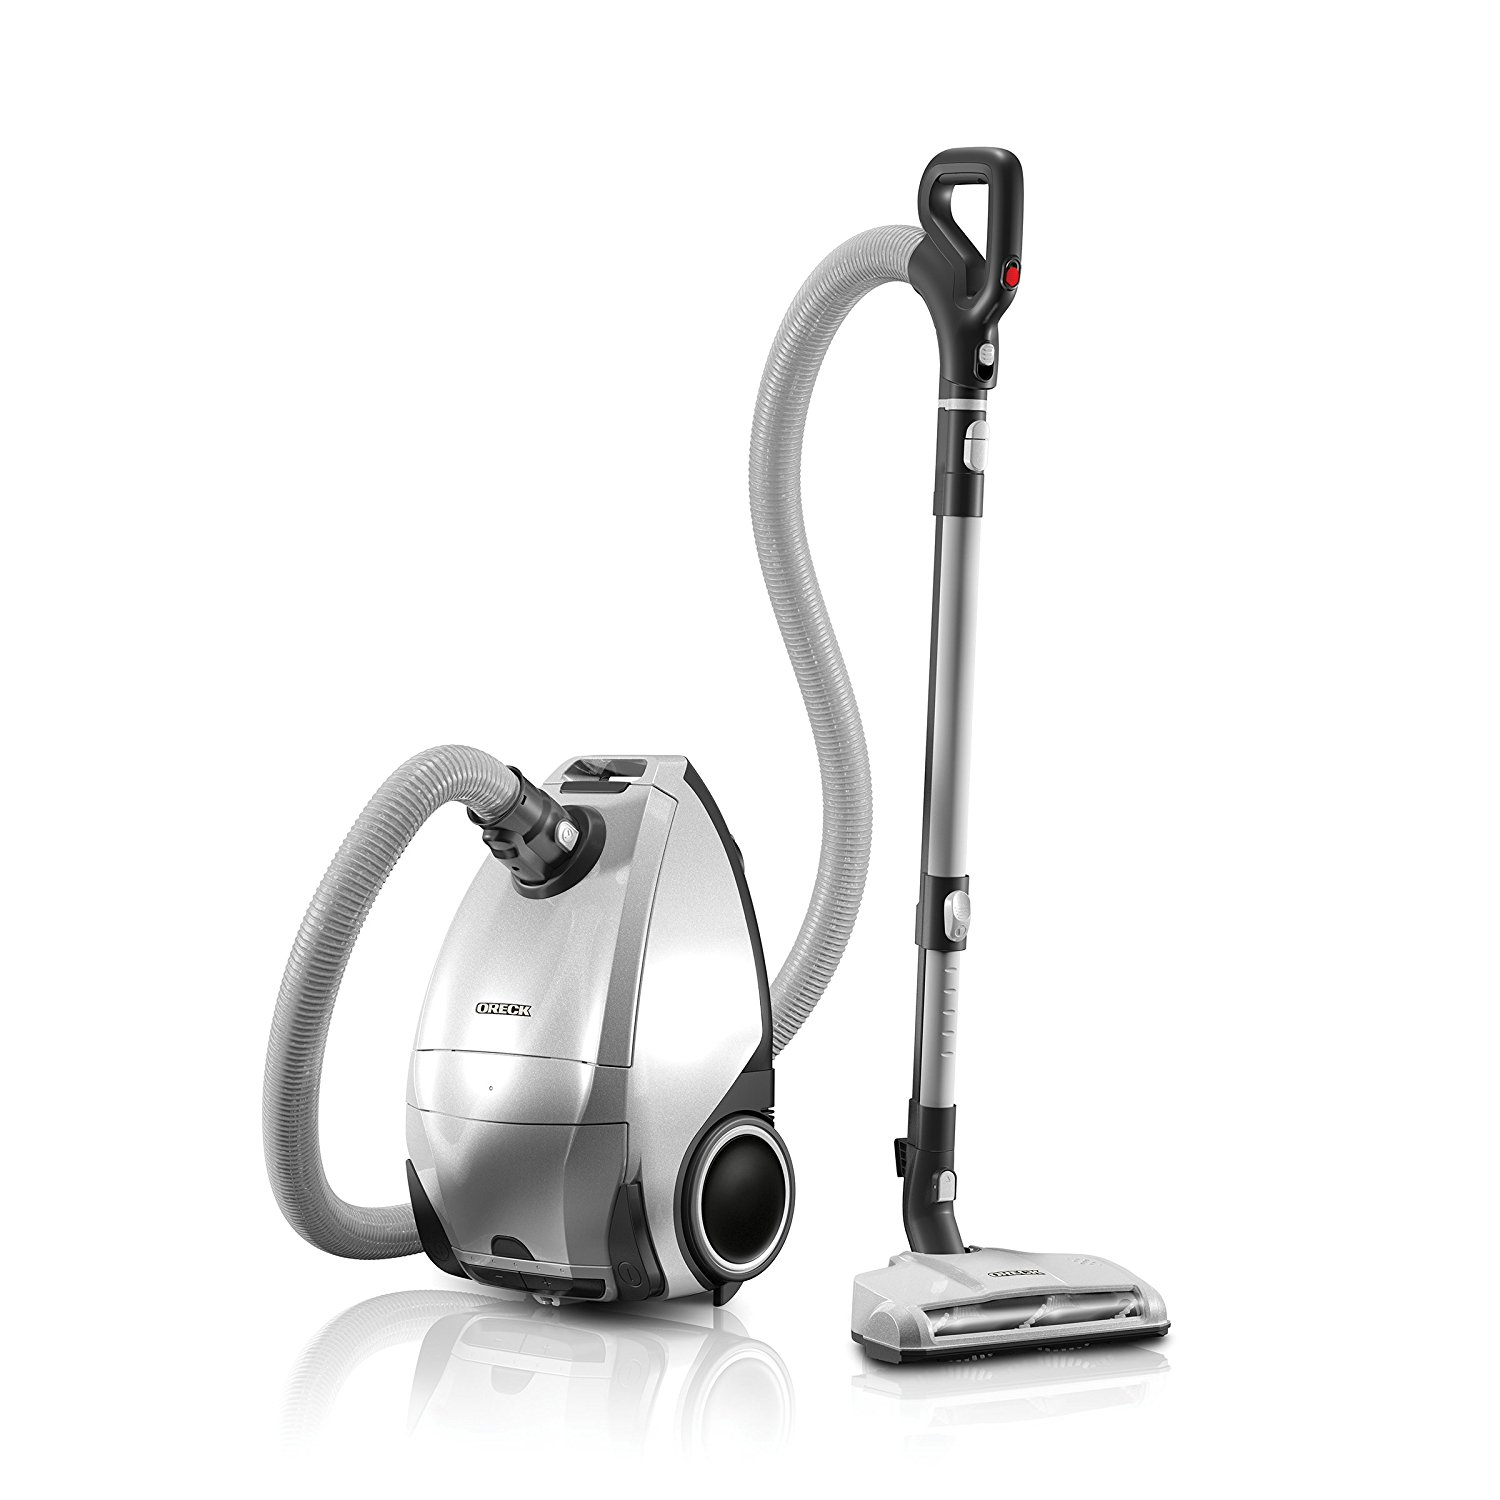 ORECK Venture Pro Multi Floor Bagged Canister Vacuum Cleaner | Carpet, Tile and Hardwood Flooring | Dirt, Debris, Pet Hair | Lightweight, High-Suction Clean | 7 YEAR Warranty And 7 Tune-Ups